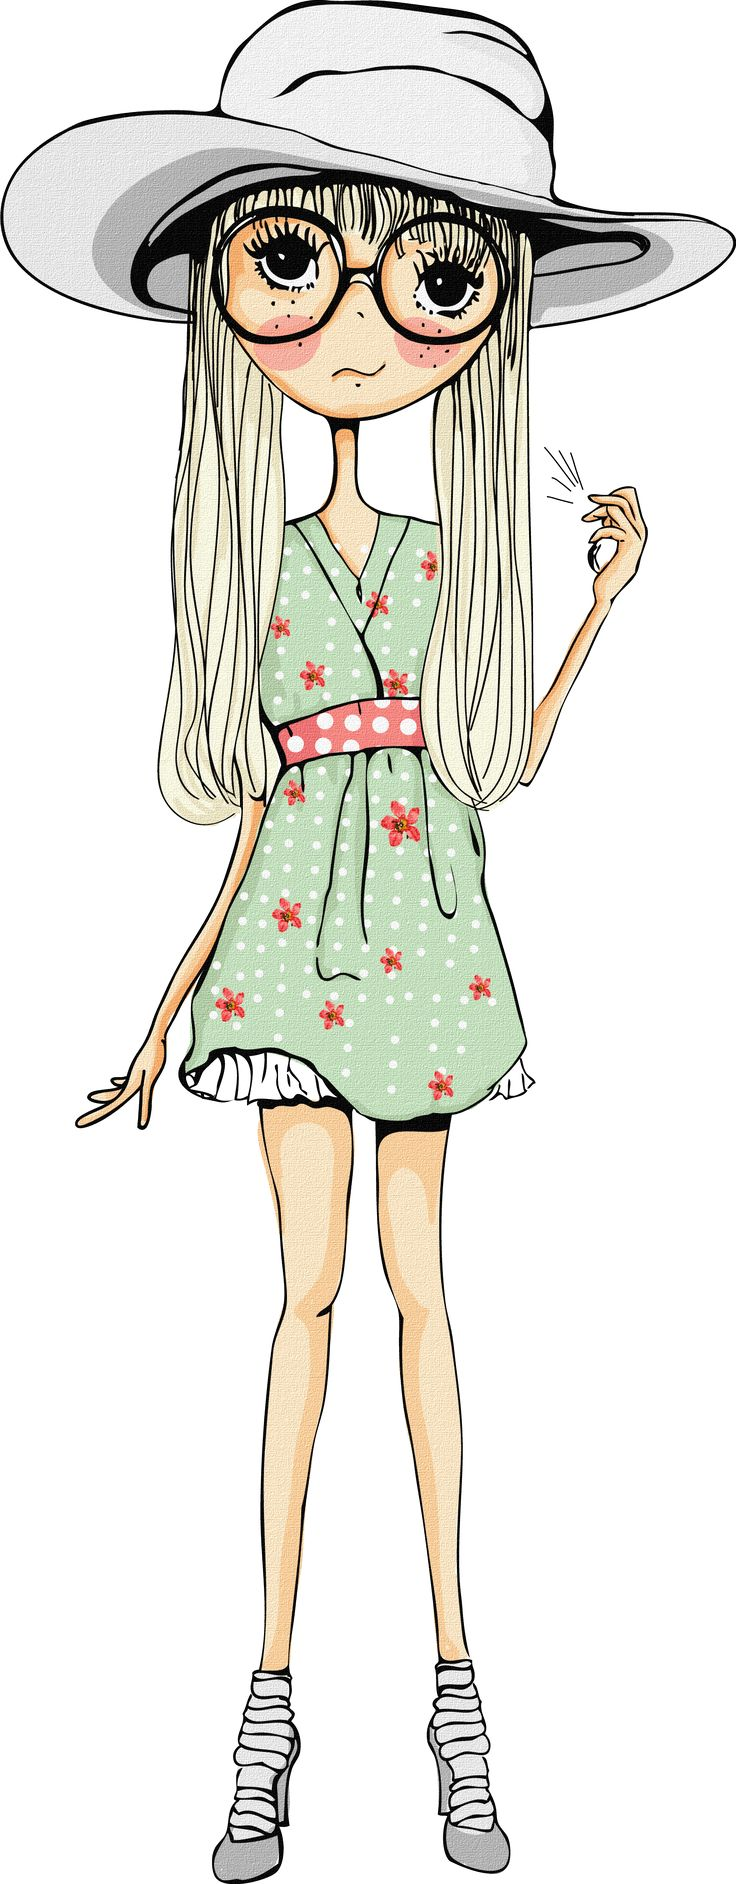 doll_png_cutee_by_julii478-d57dolz.png (1503×3849)